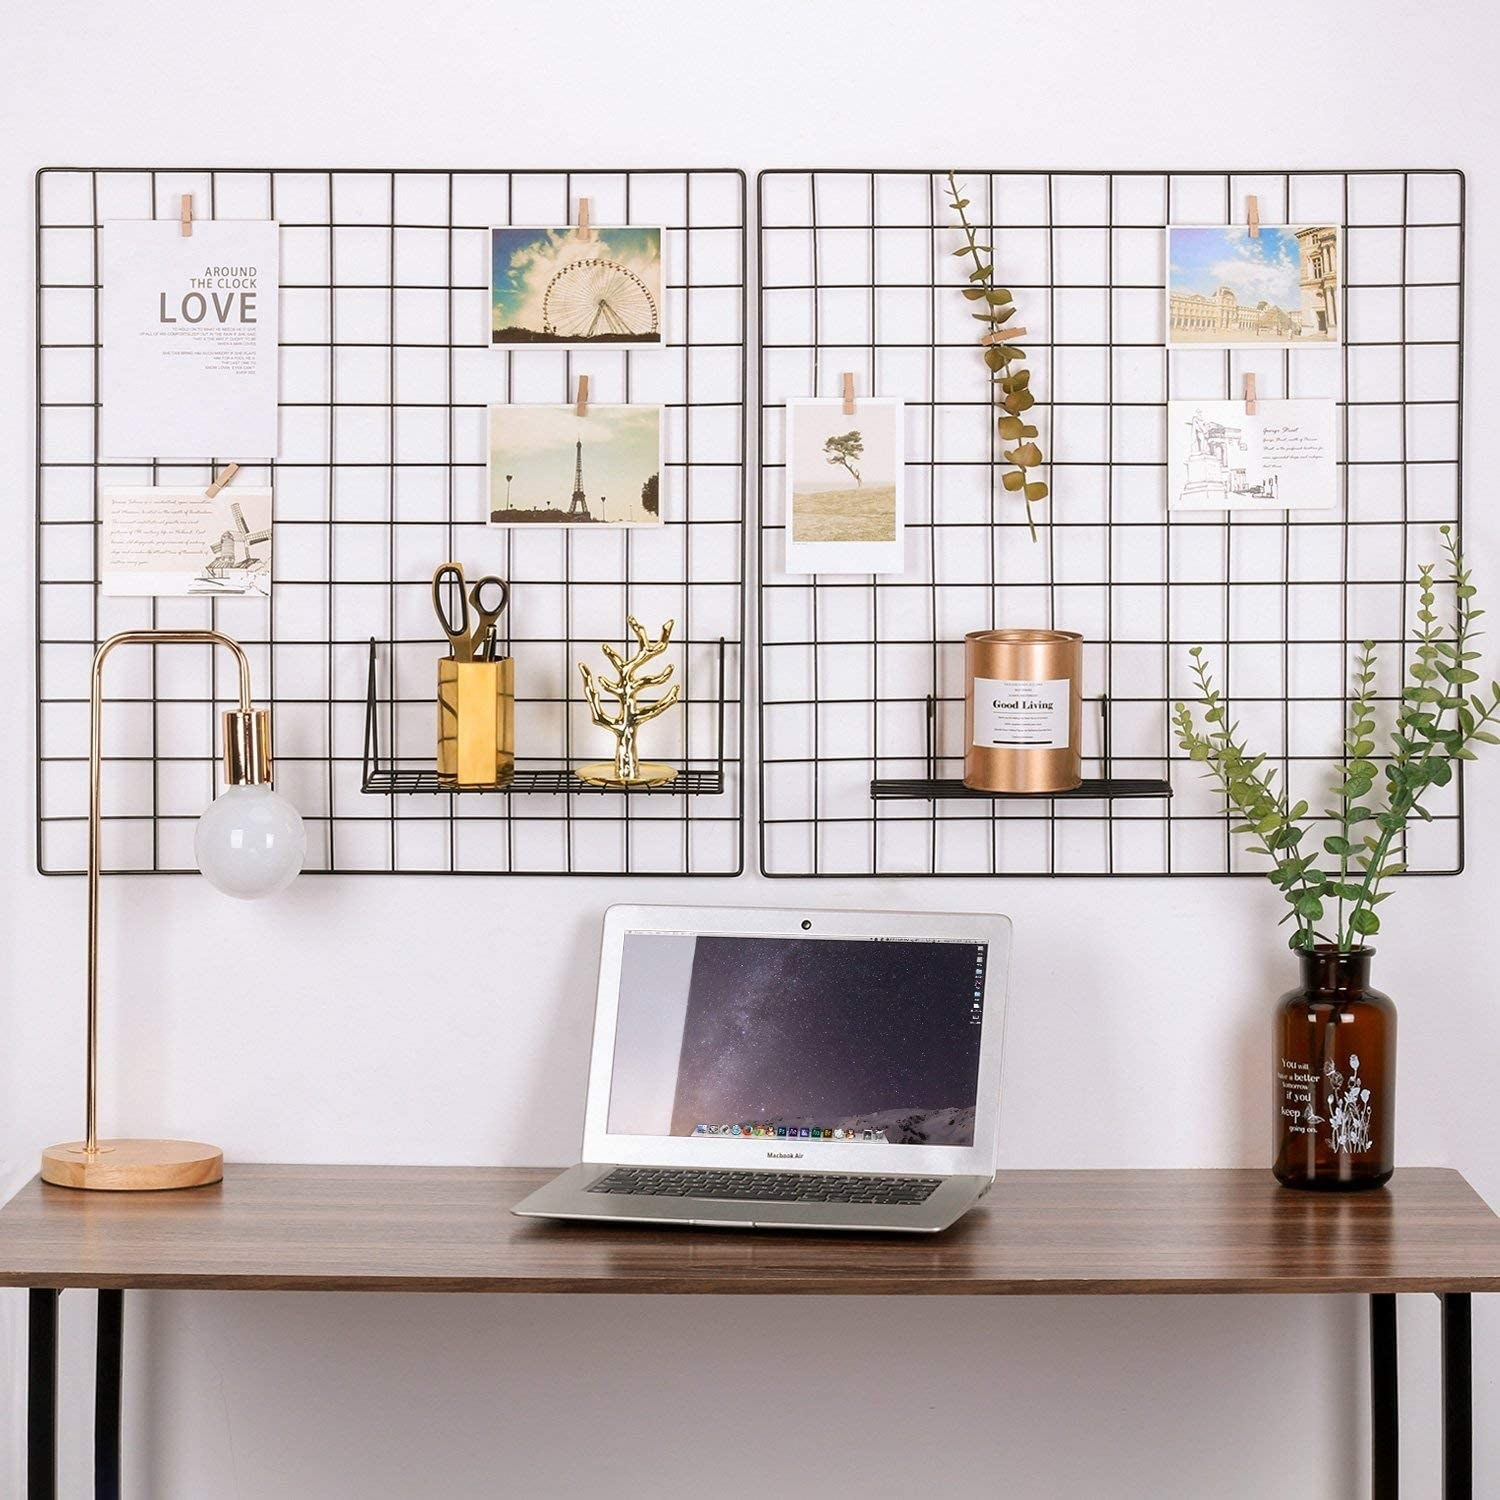 A wired frame is mounted on a wall with notes and pictures attached to it above a desk with a laptop on it